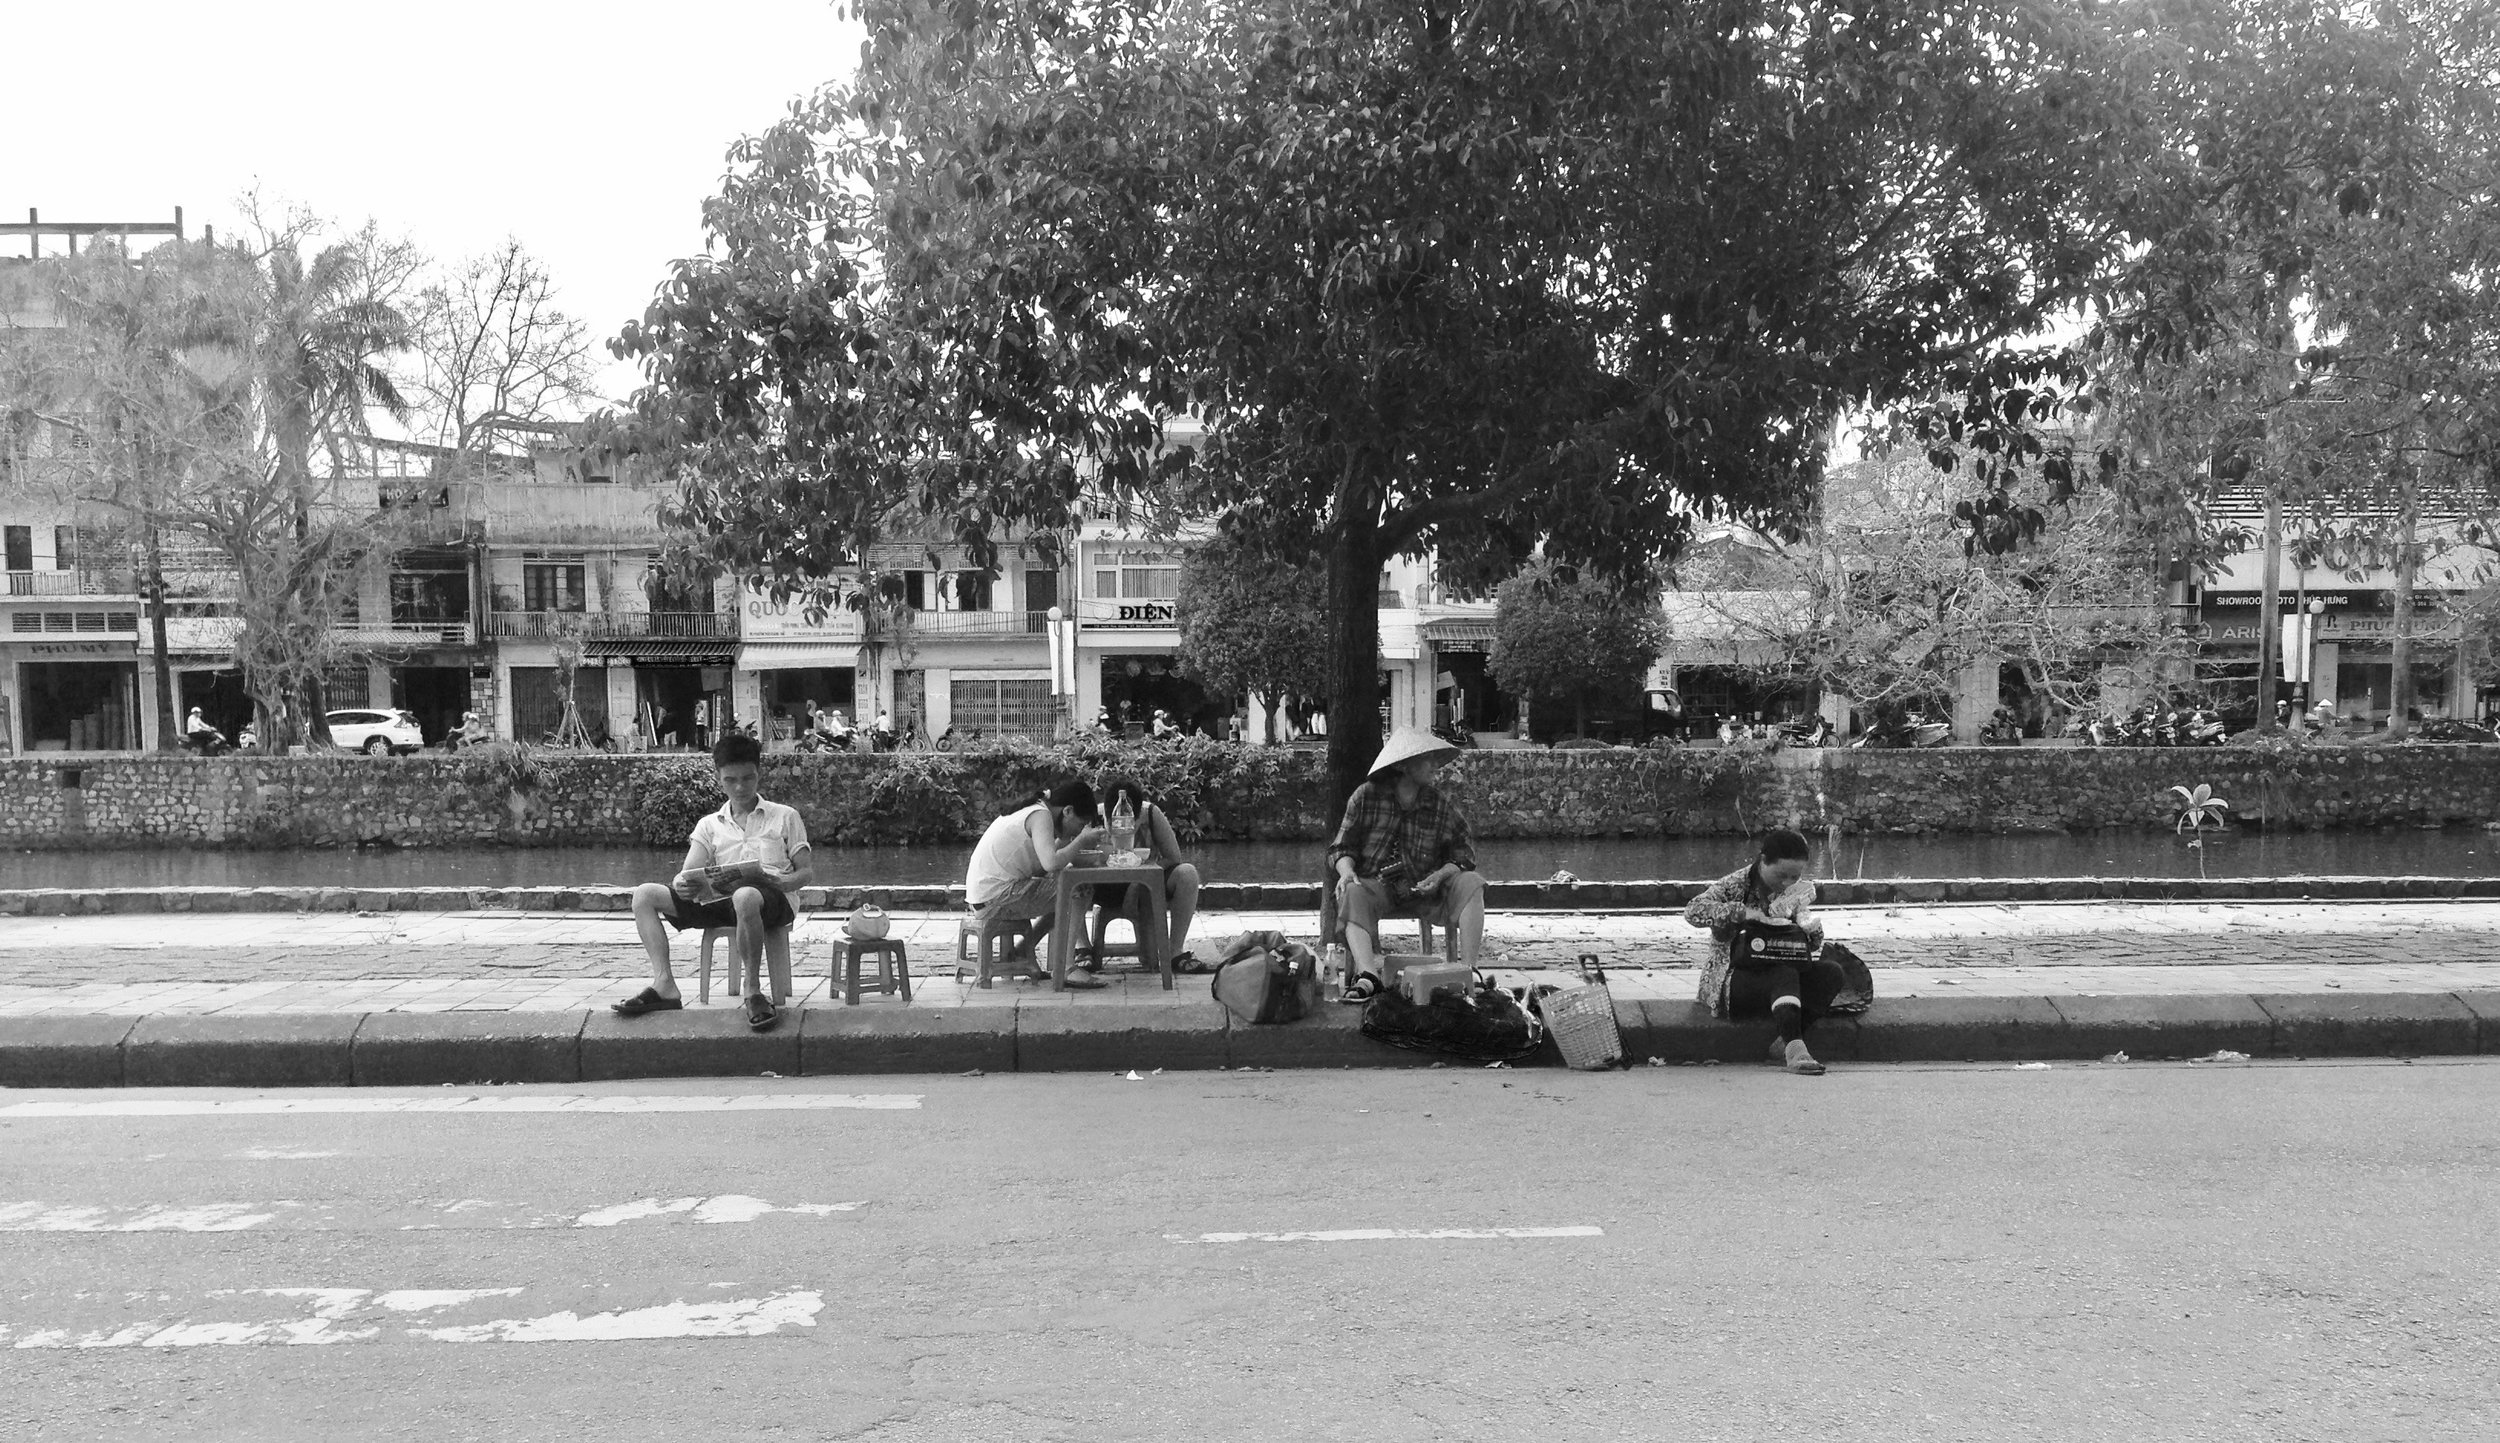 Typical sidewalk action in Hue - little chairs set up for newspaper reading, snacking and traffic watching